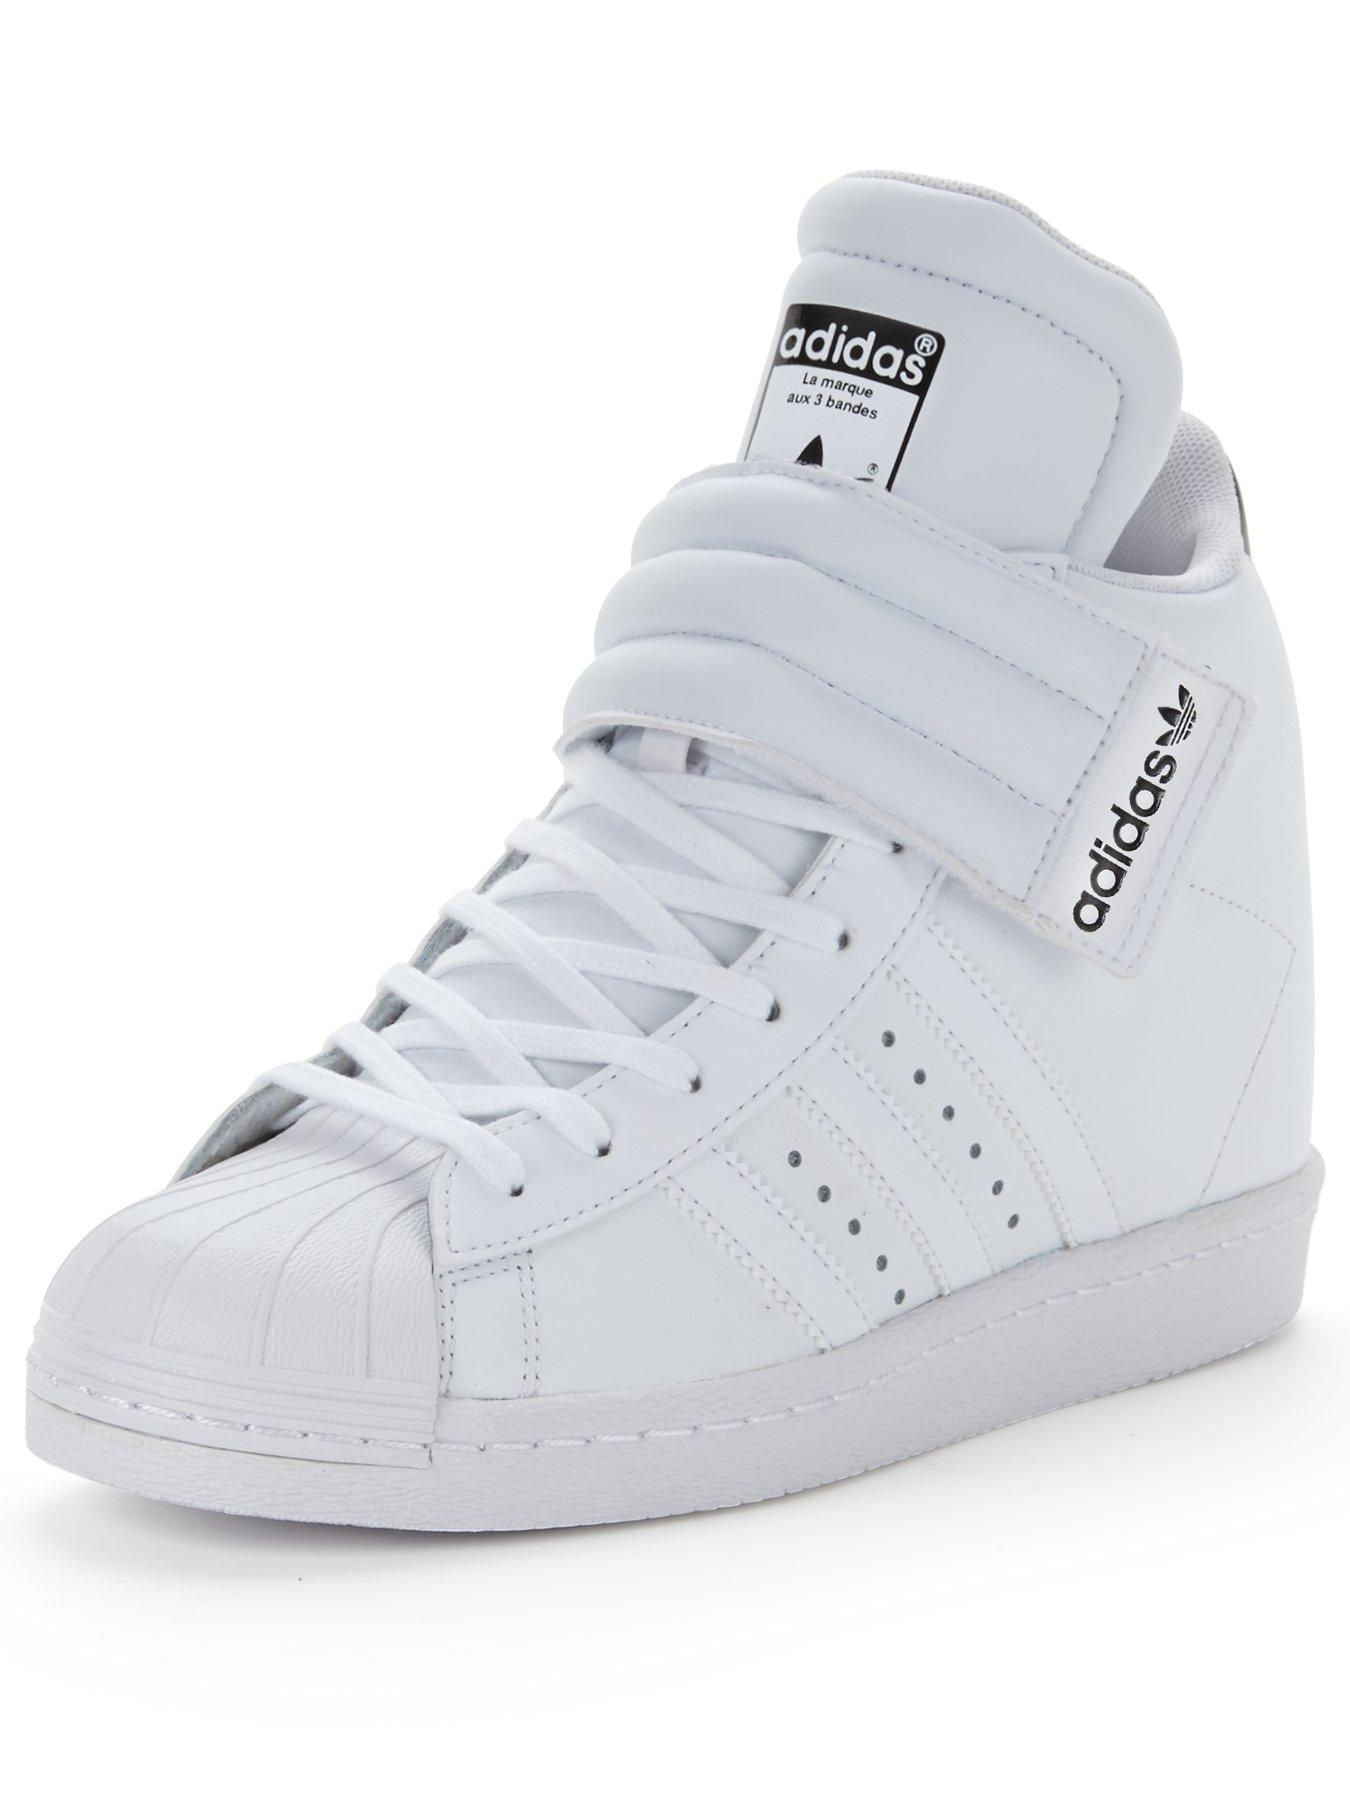 Adidas Superstar Gold And White Price